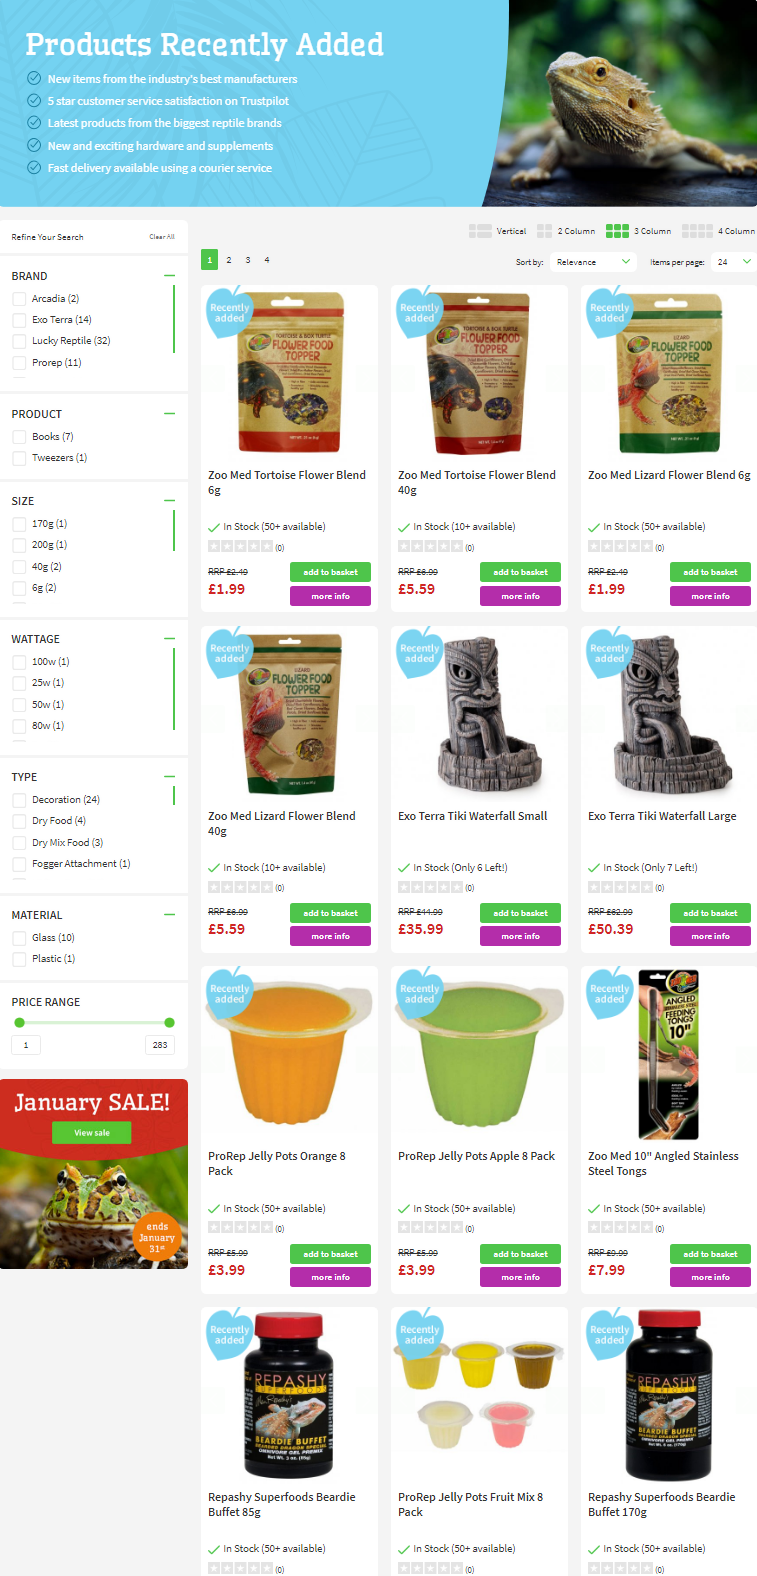 The new products include these from the biggest reptile brands in the UK including ProRep, Zoo Med, ...